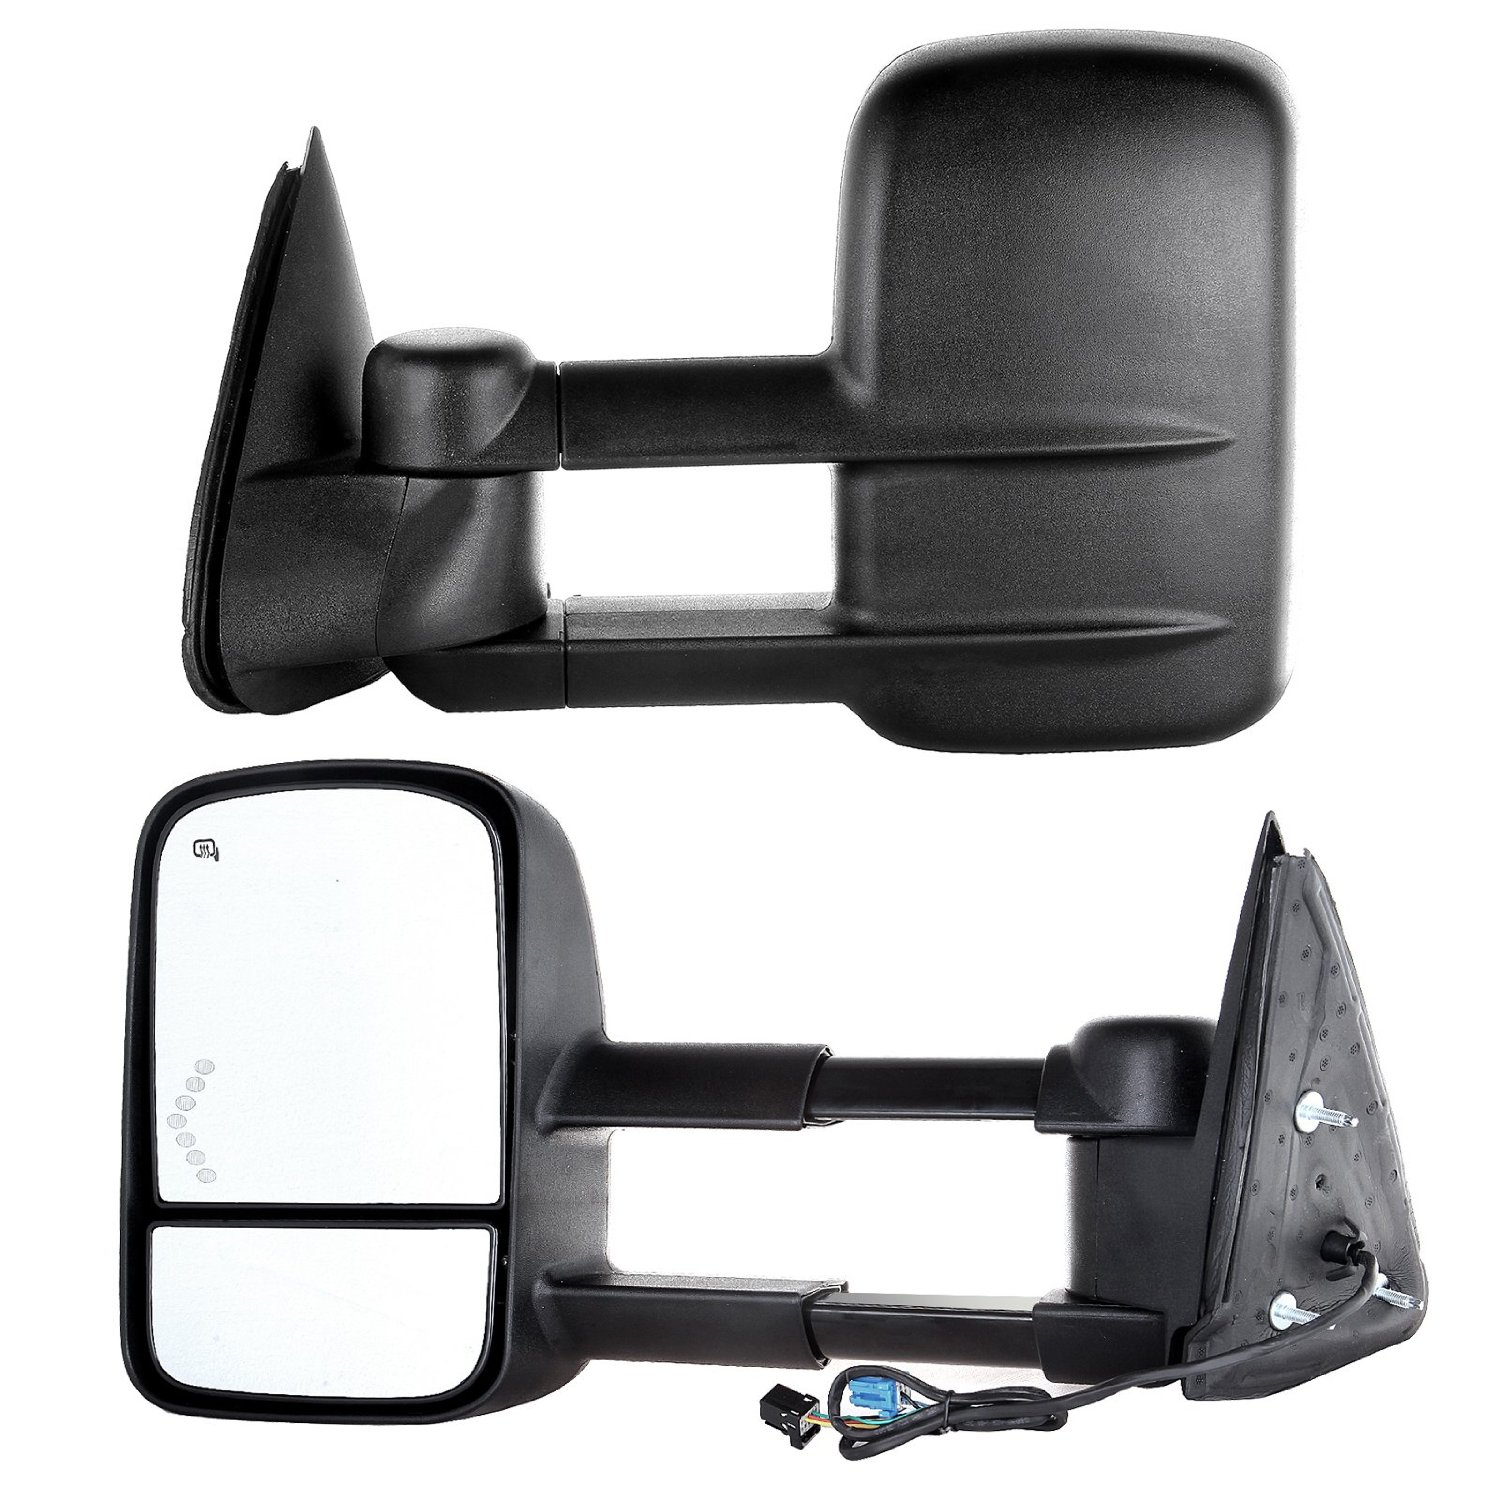 Scitoo Power Heated Arrow LED Signal Side Mirror for 03-07 Chevy/GMC Silverado/Sierra Towing Mirrors Pair Set (07 Classic)